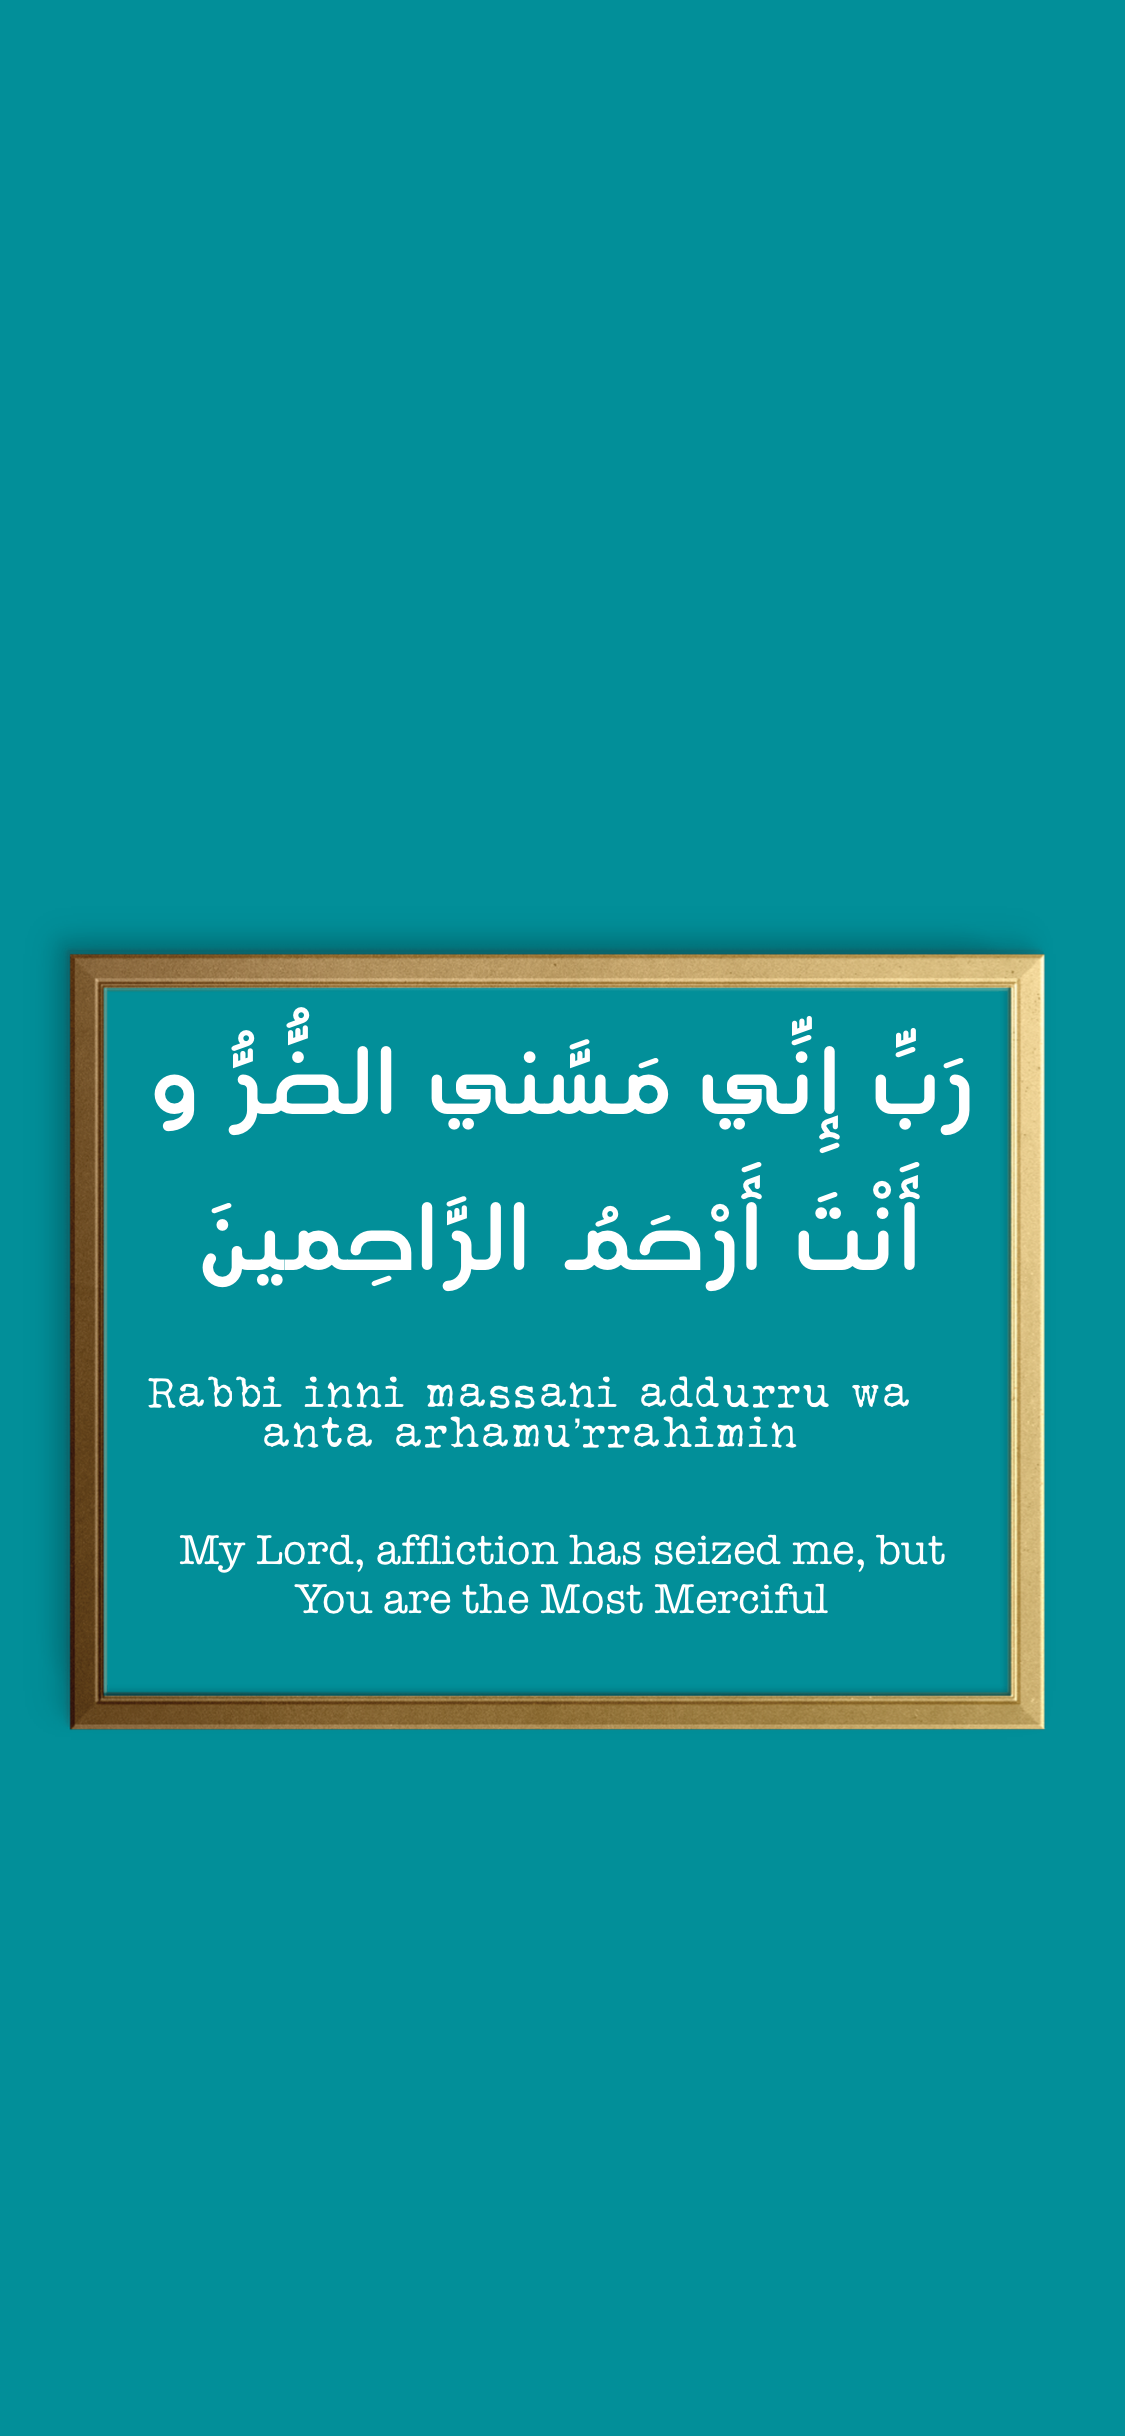 Dua for cancer patients | Iphone islamic wallpaper | Islamic